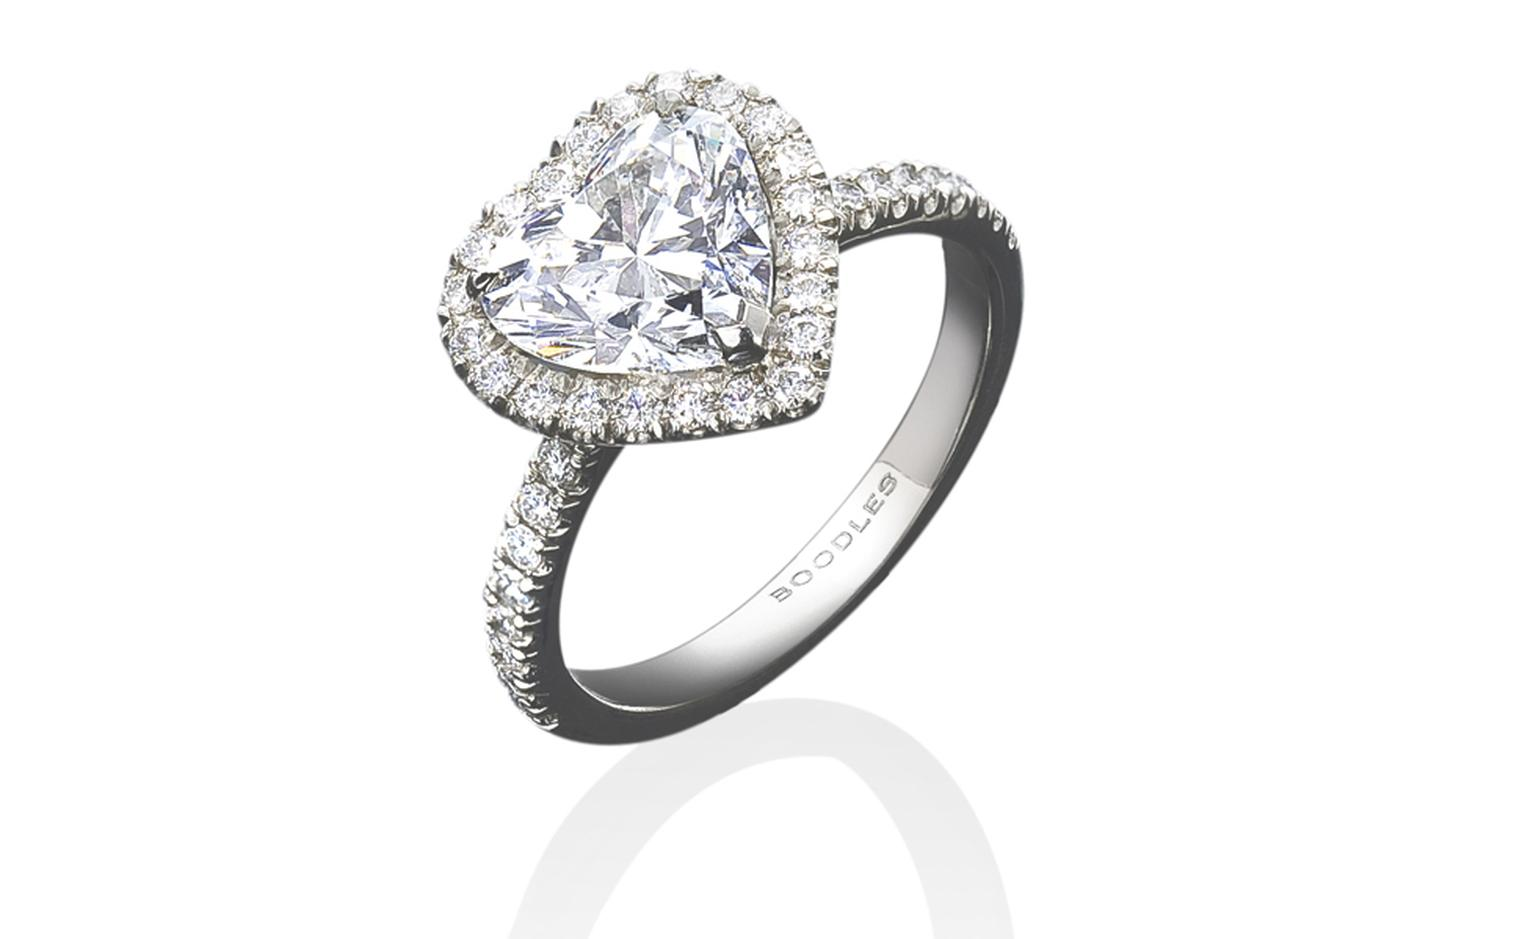 Boodles, Heart shape diamond vintage style ring £42,000